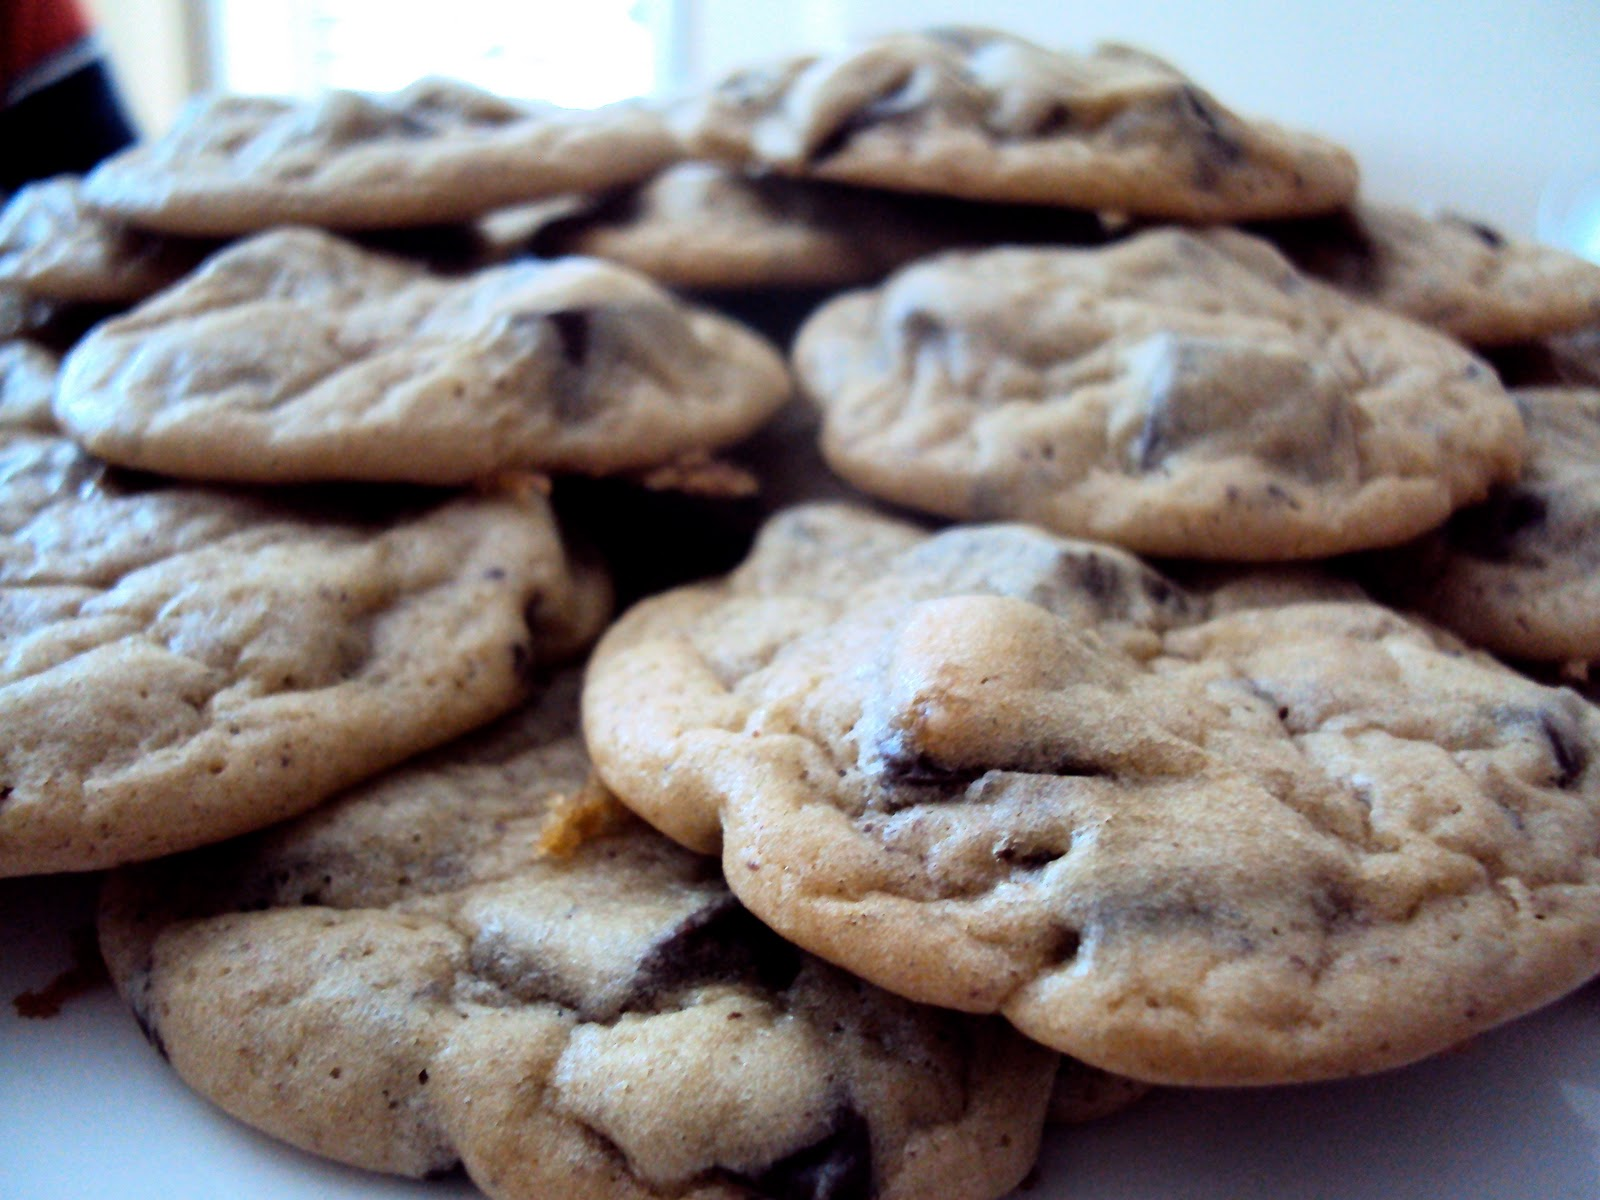 Squirrel bakes cholesterol free chocolate chip cookies cholesterol free chocolate chip cookies forumfinder Choice Image